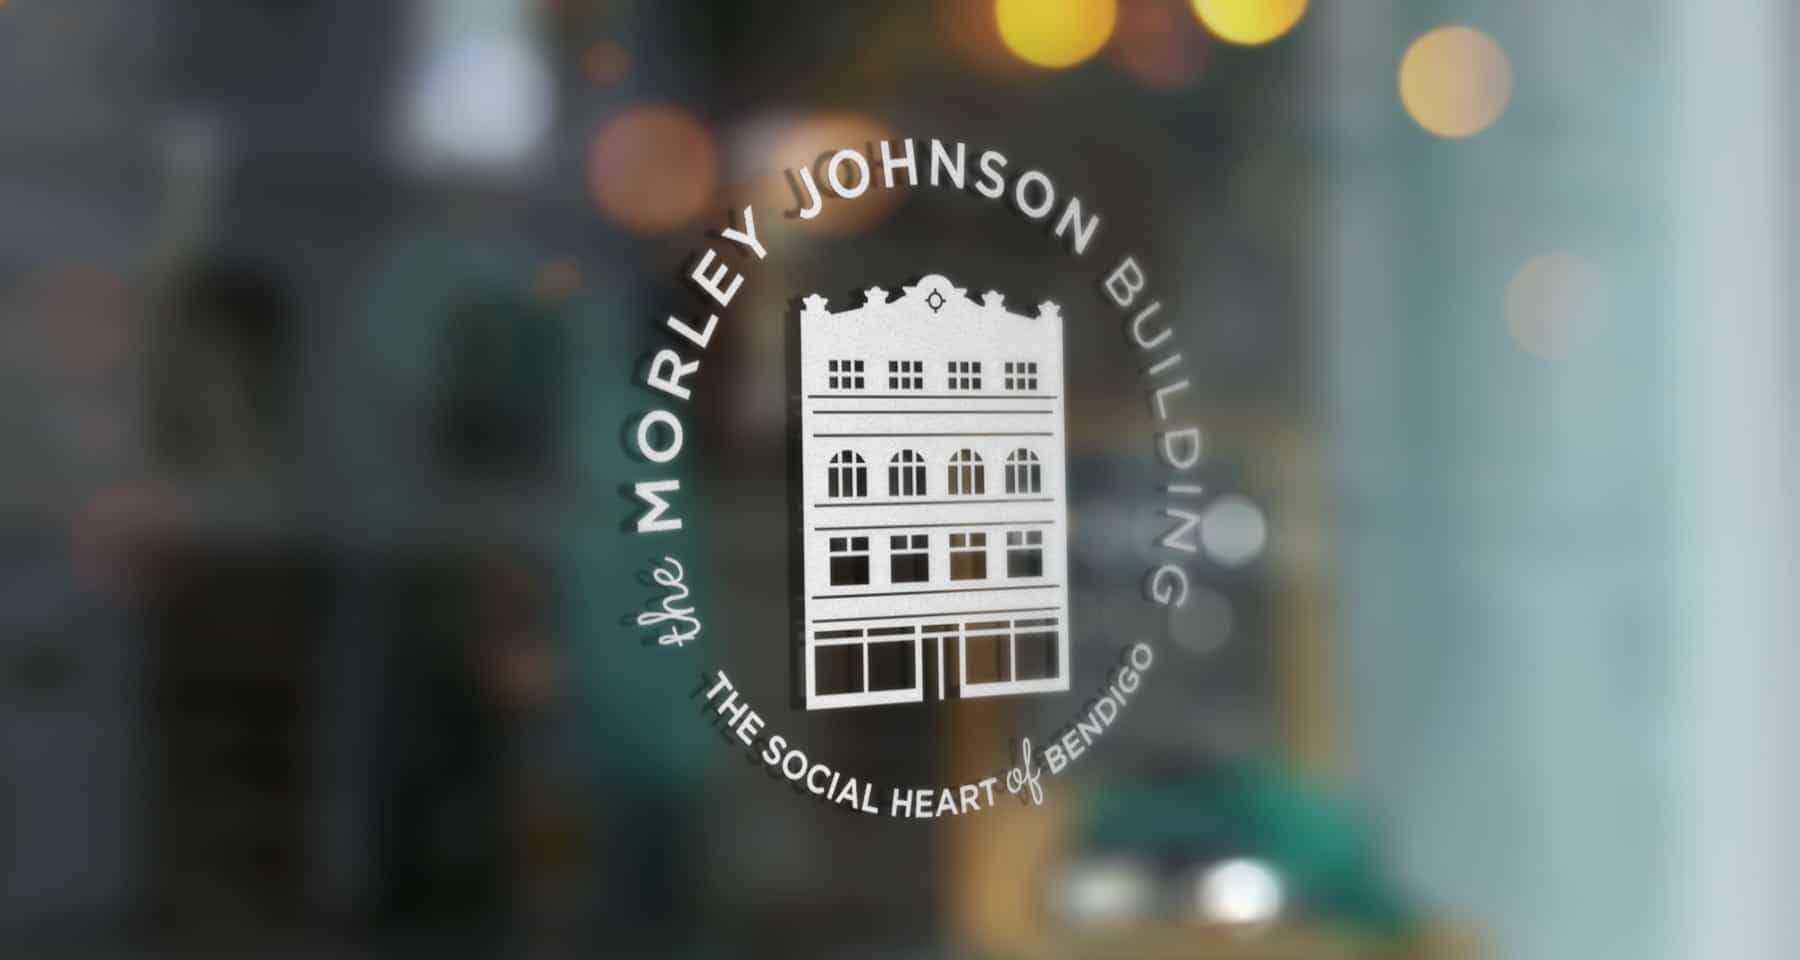 Morley Johnson Building Logo on Window